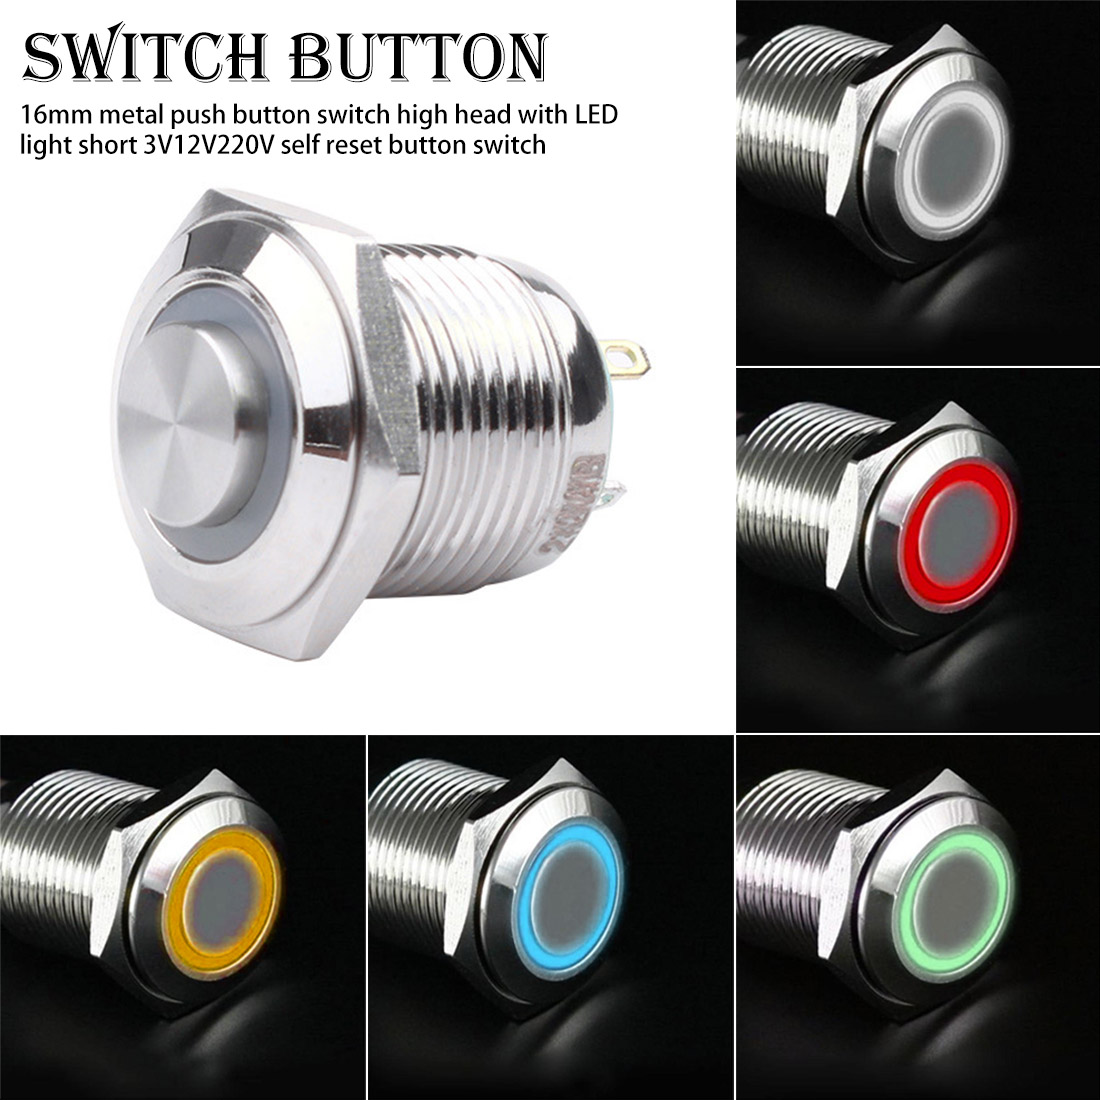 16mm metal push button switch high head with LED light short 3V12V220V self reset button switch valve light switch16mm metal push button switch high head with LED light short 3V12V220V self reset button switch valve light switch